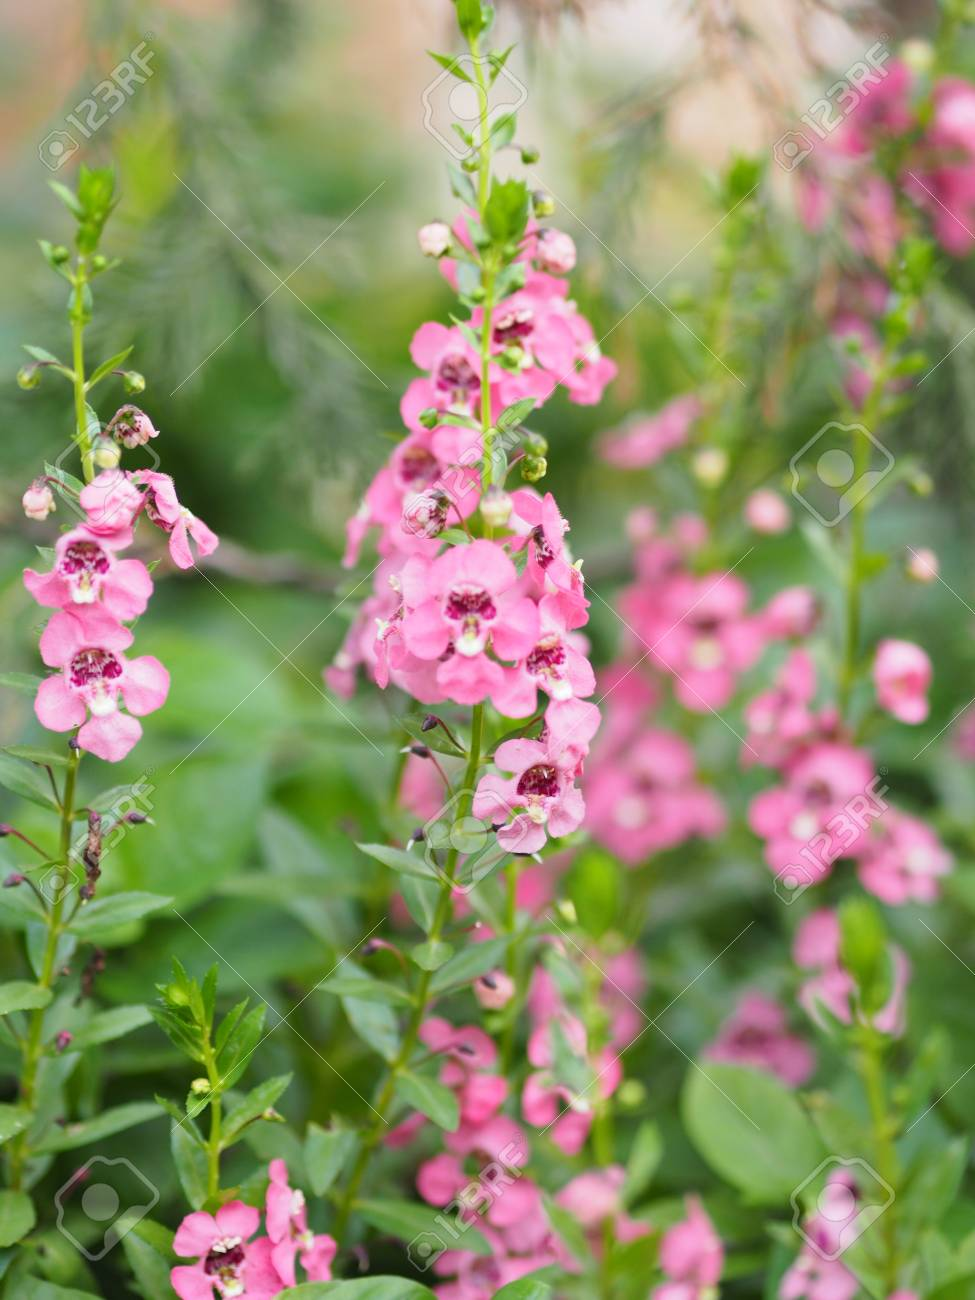 Forget Me Not Red Pink Flower Bouquet Beautiful Nature Stock Photo Picture And Royalty Free Image Image 124677873